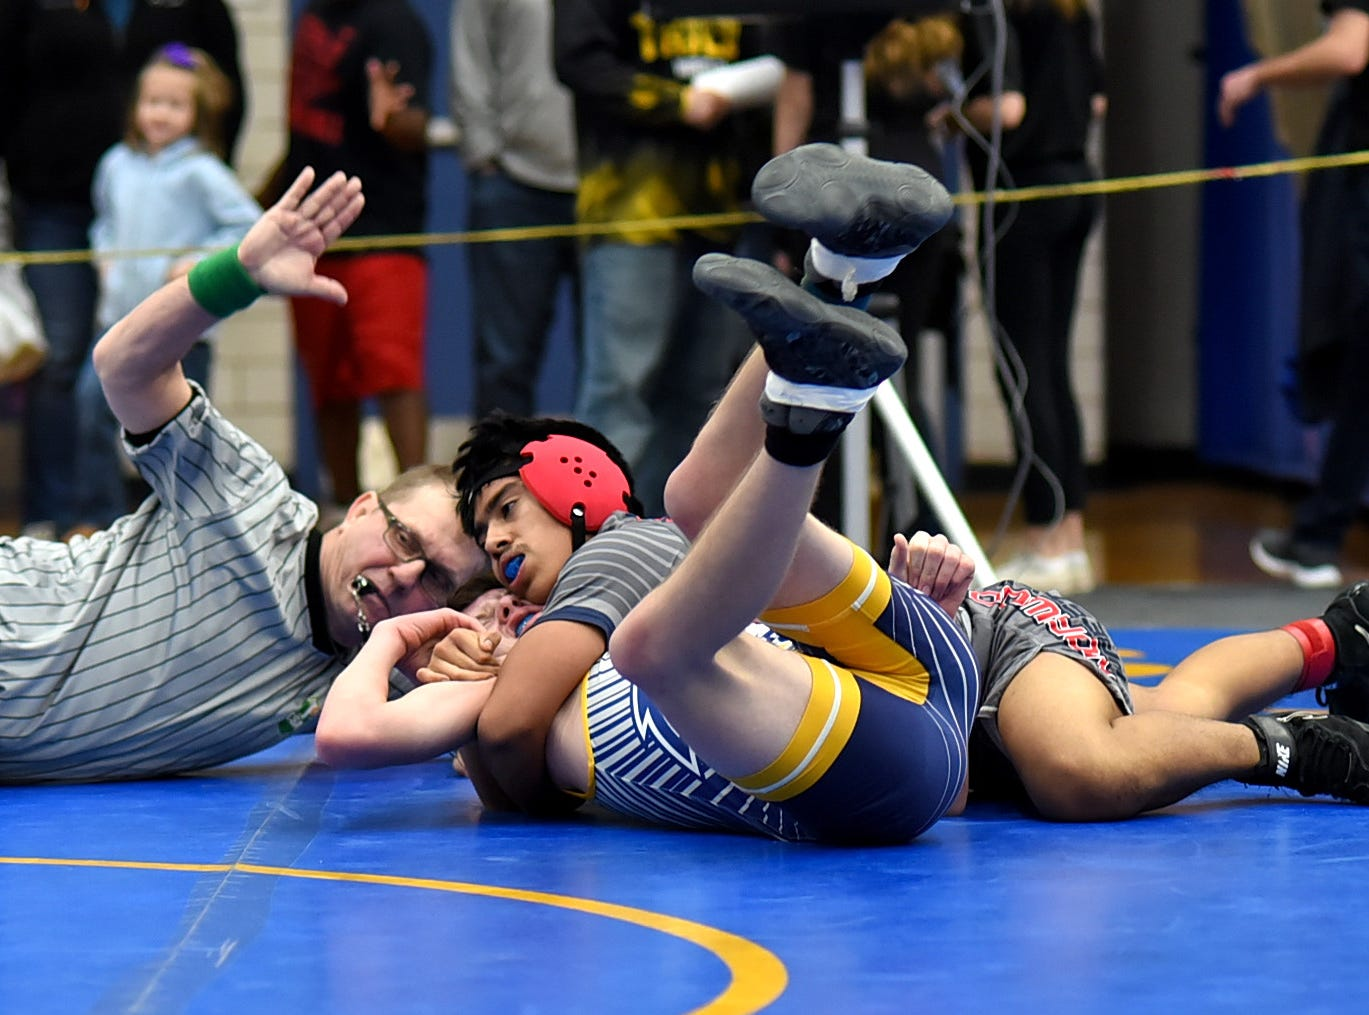 Norwood's Jason Almengor buttons up a pinfall over Madeira's Kobe Jones in the first round of the Bob Kearns Madeira Invitational, January 4, 2019.